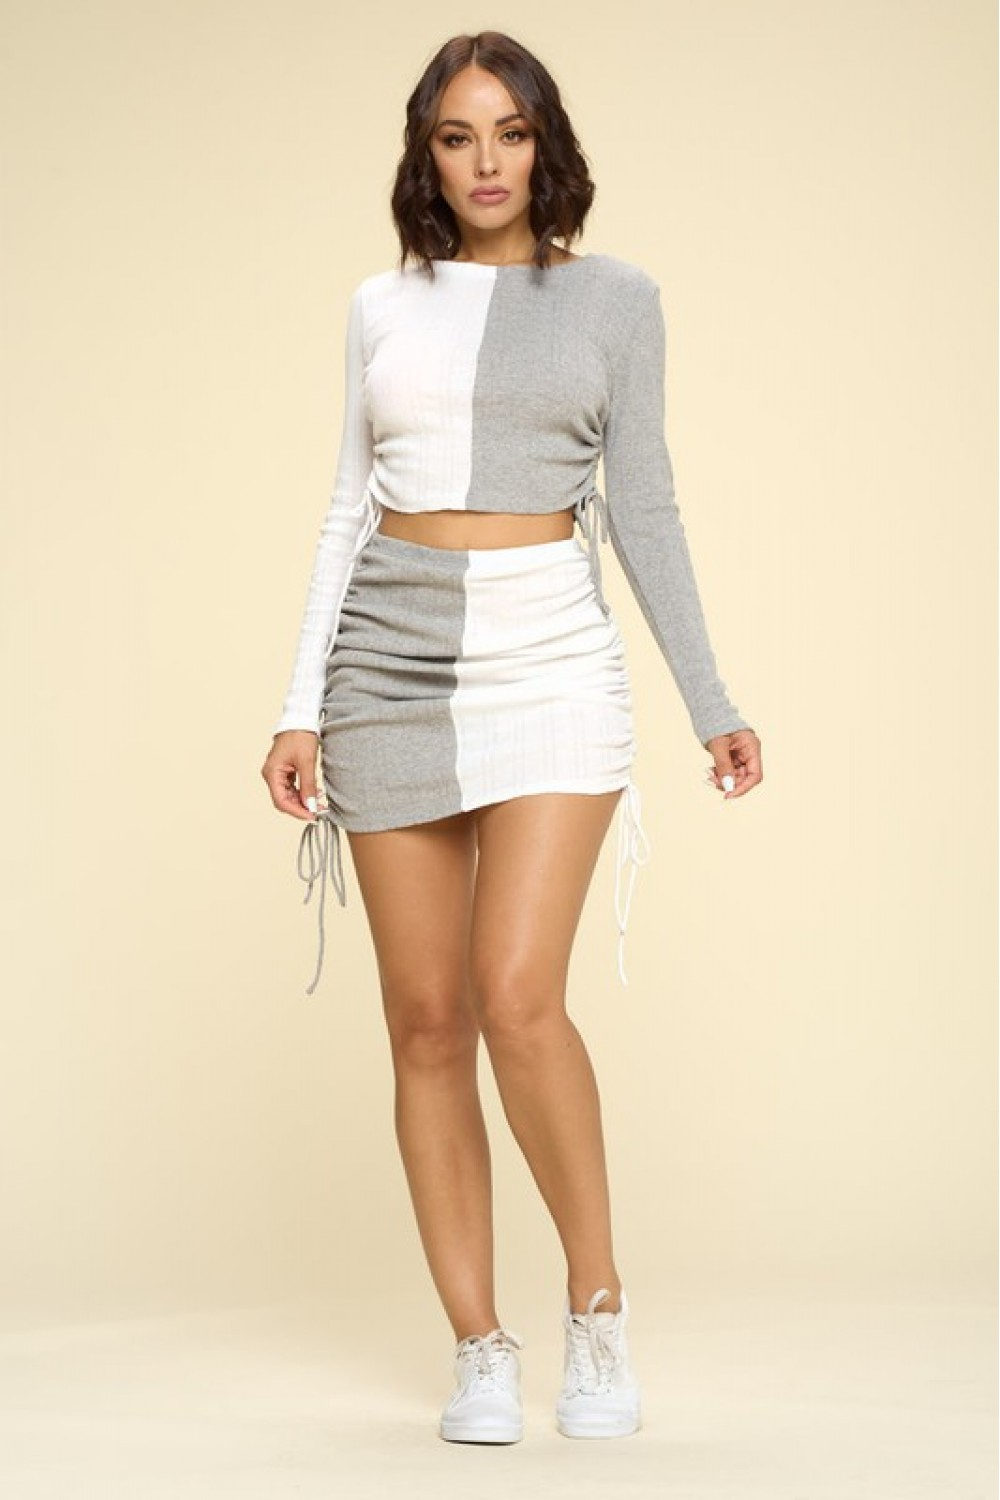 5TH2618<br/>Contrast Color Summer Set, Long Sleeves Crop Top, Ruched Side Drawstrings Mini Skirt